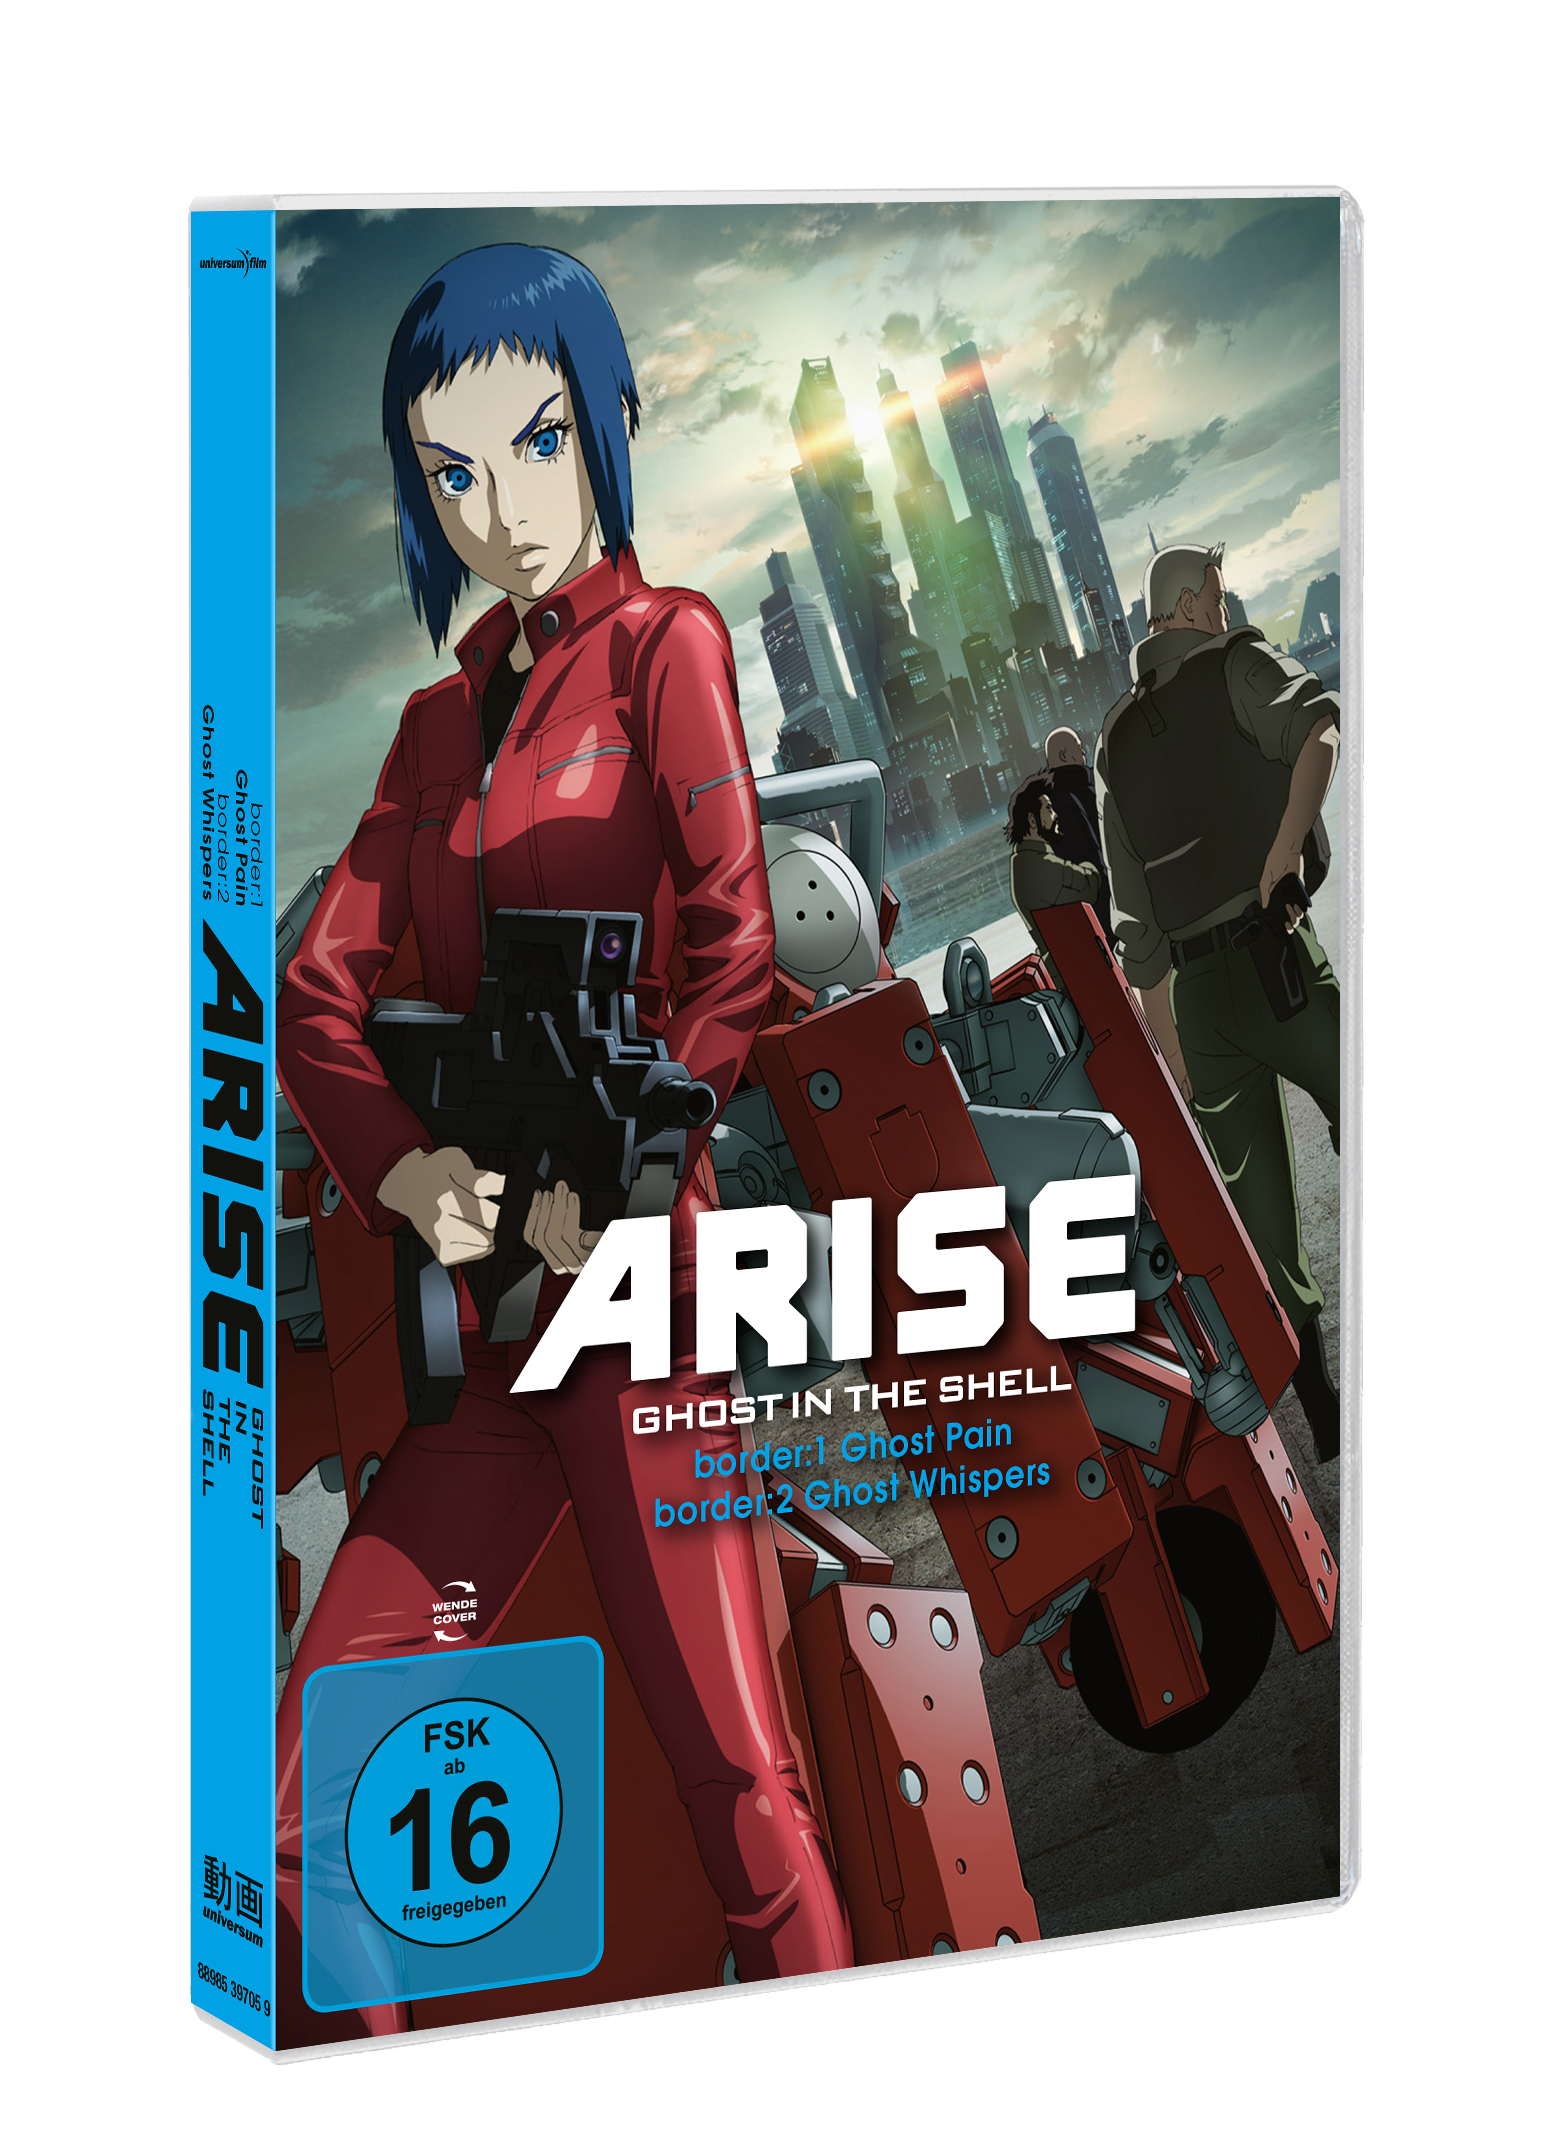 Ghost_in_the_Shell__ARISE_border12_DVD_Standard_889853970599_3D